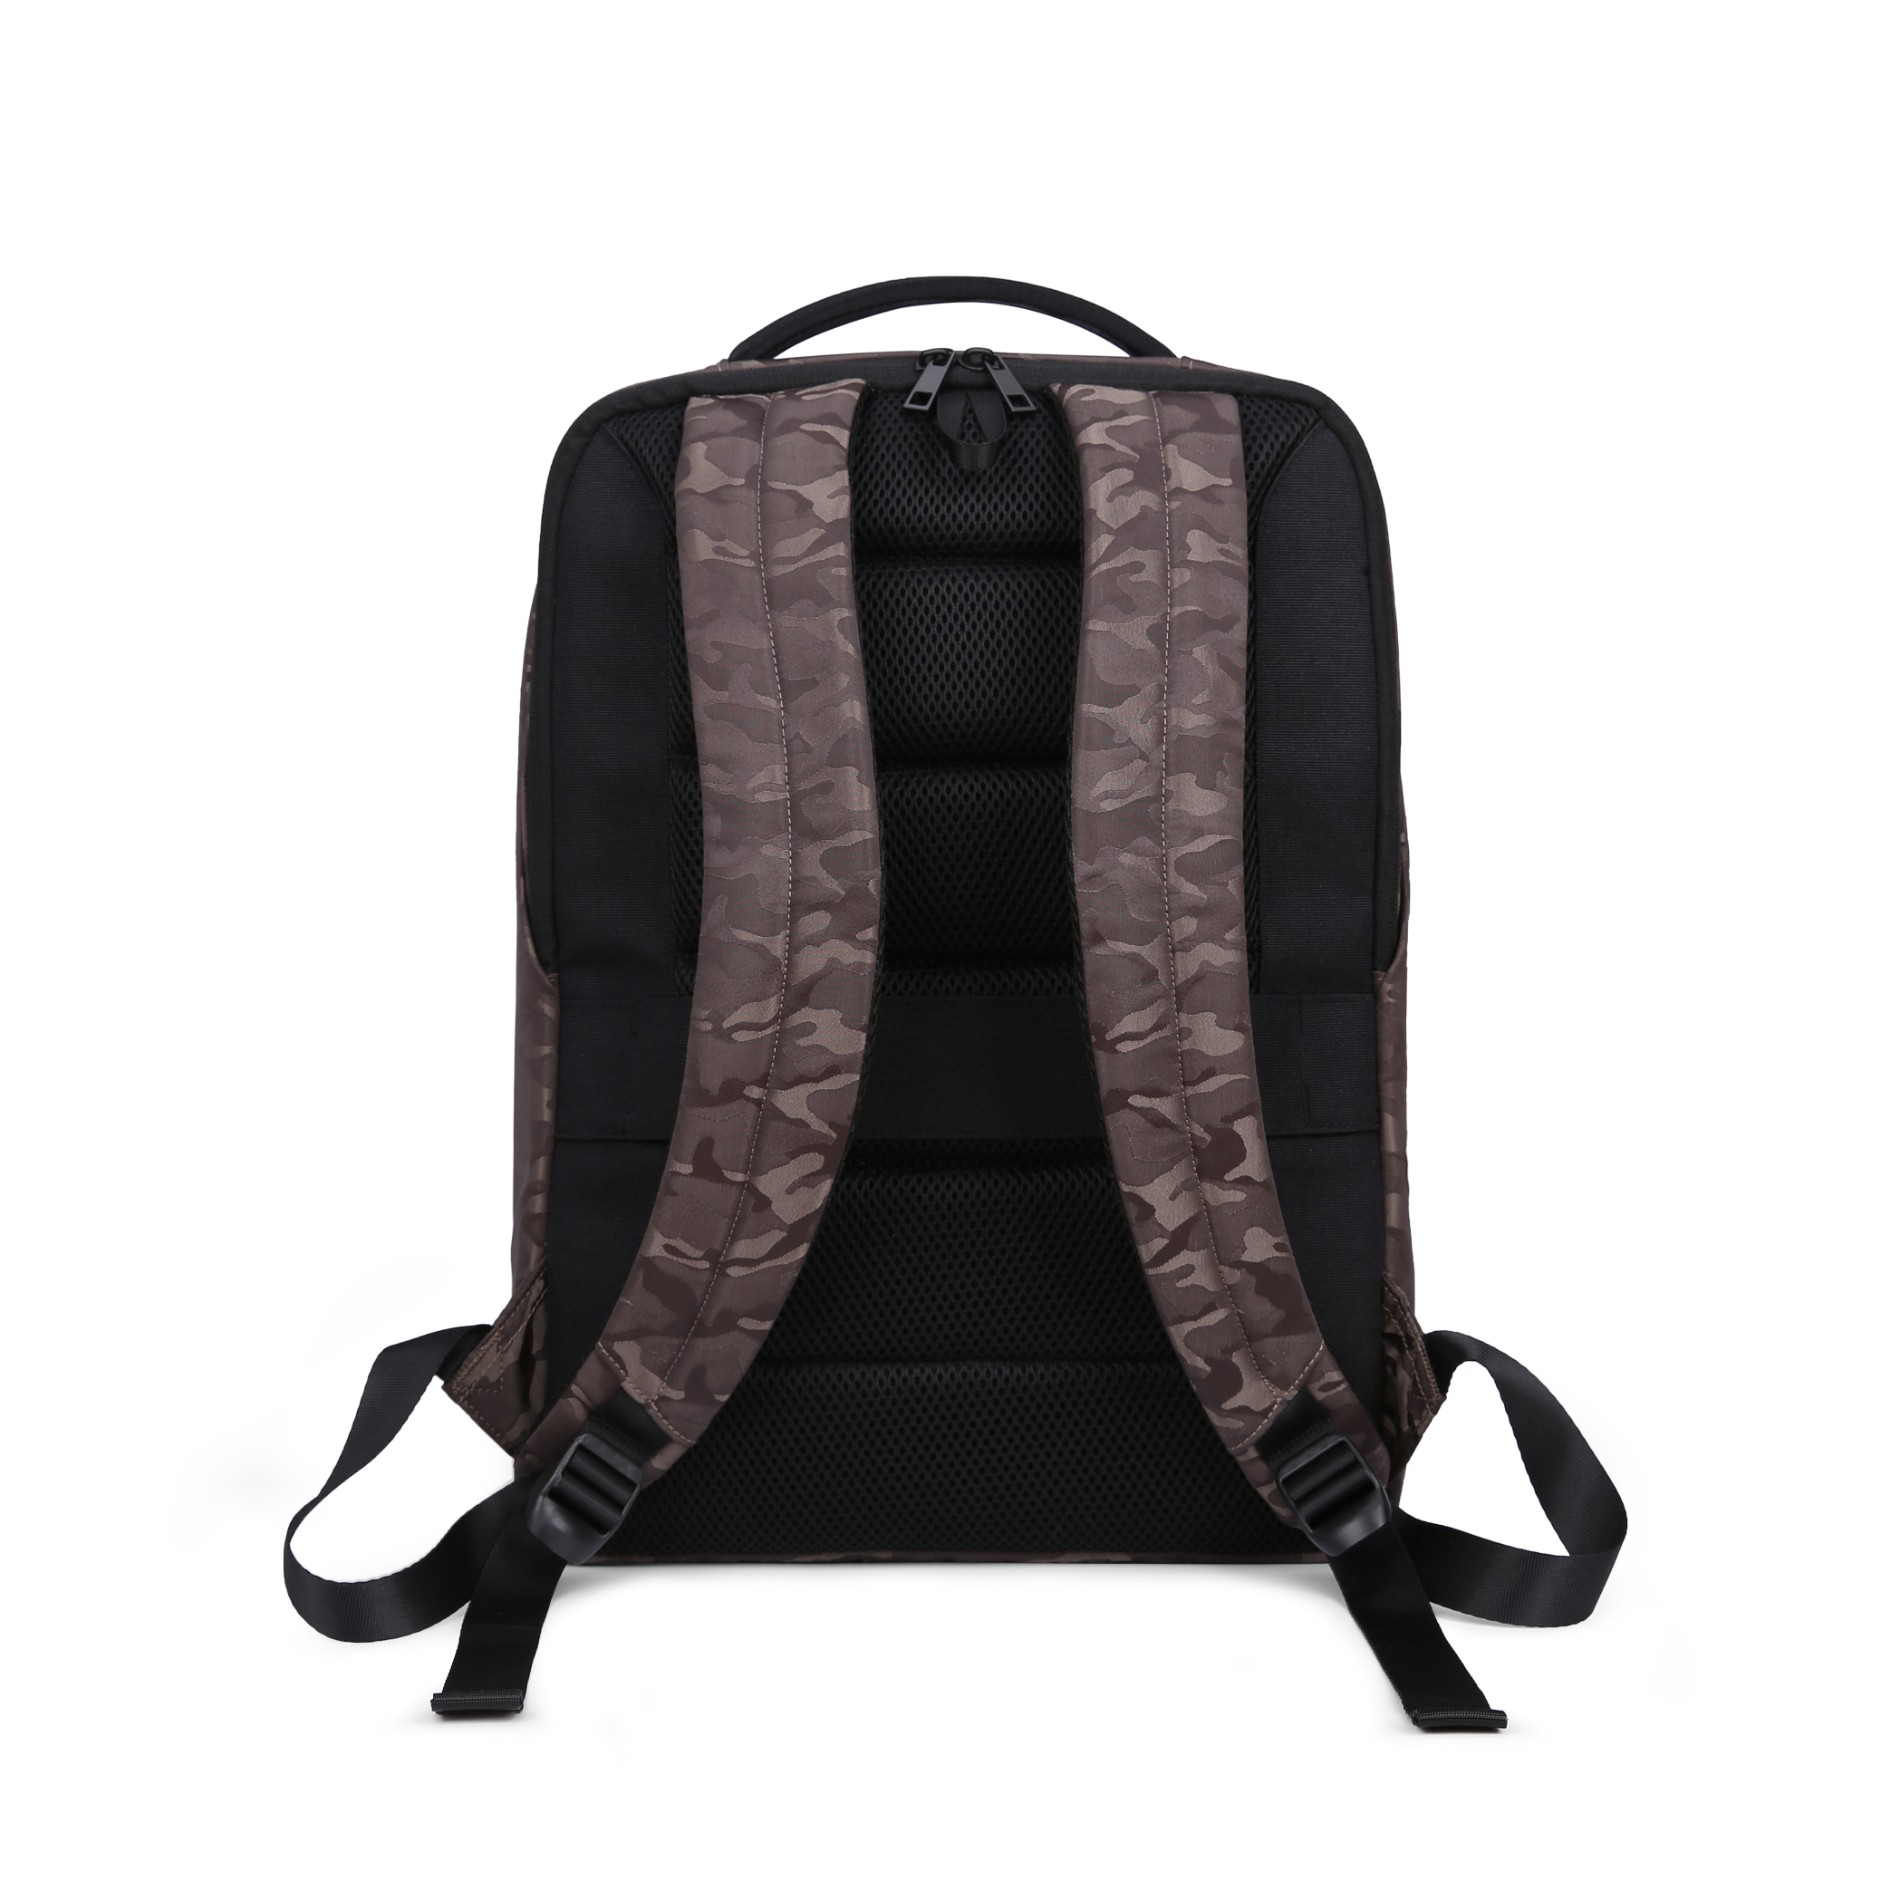 Custom Laptop Backpacks Manufacturers, Custom Laptop Backpacks Factory, Supply Custom Laptop Backpacks